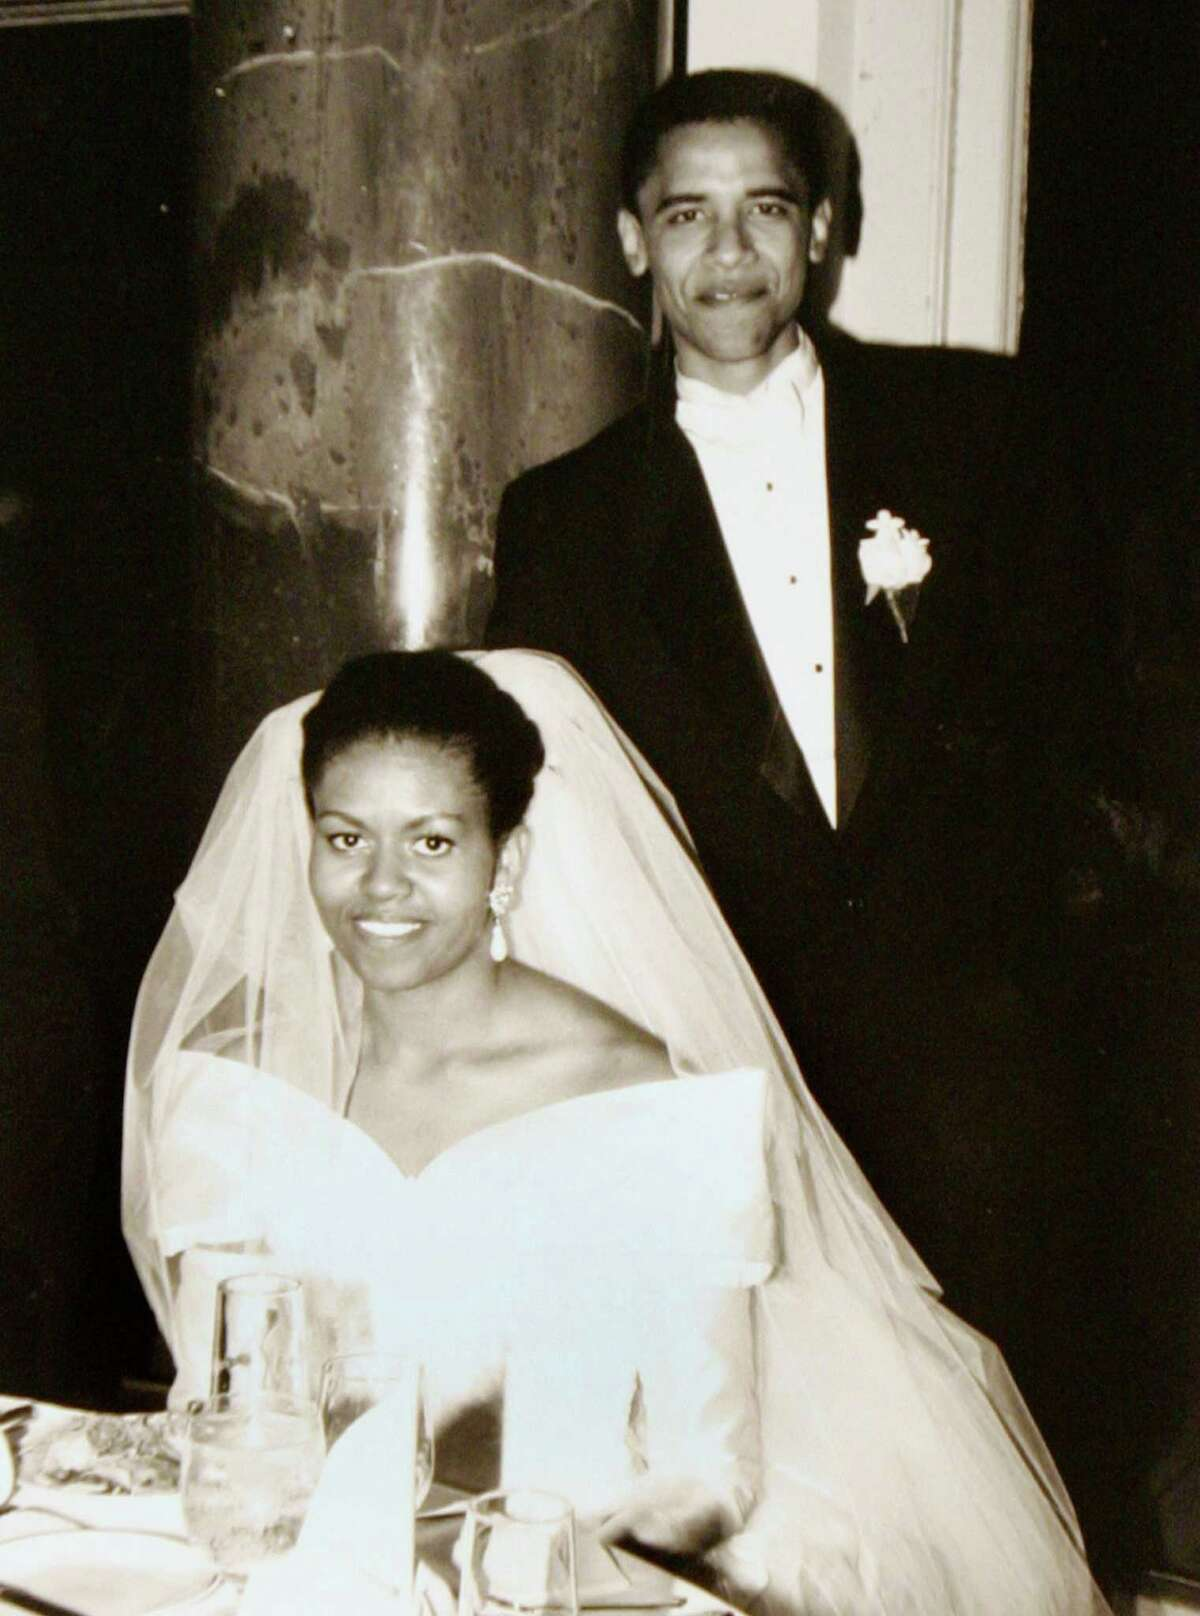 In this Oct. 18, 1992, photo released by the Obama for America campaign shows Barack Obama and his bride Michelle Robinson on their wedding day in Chicago.